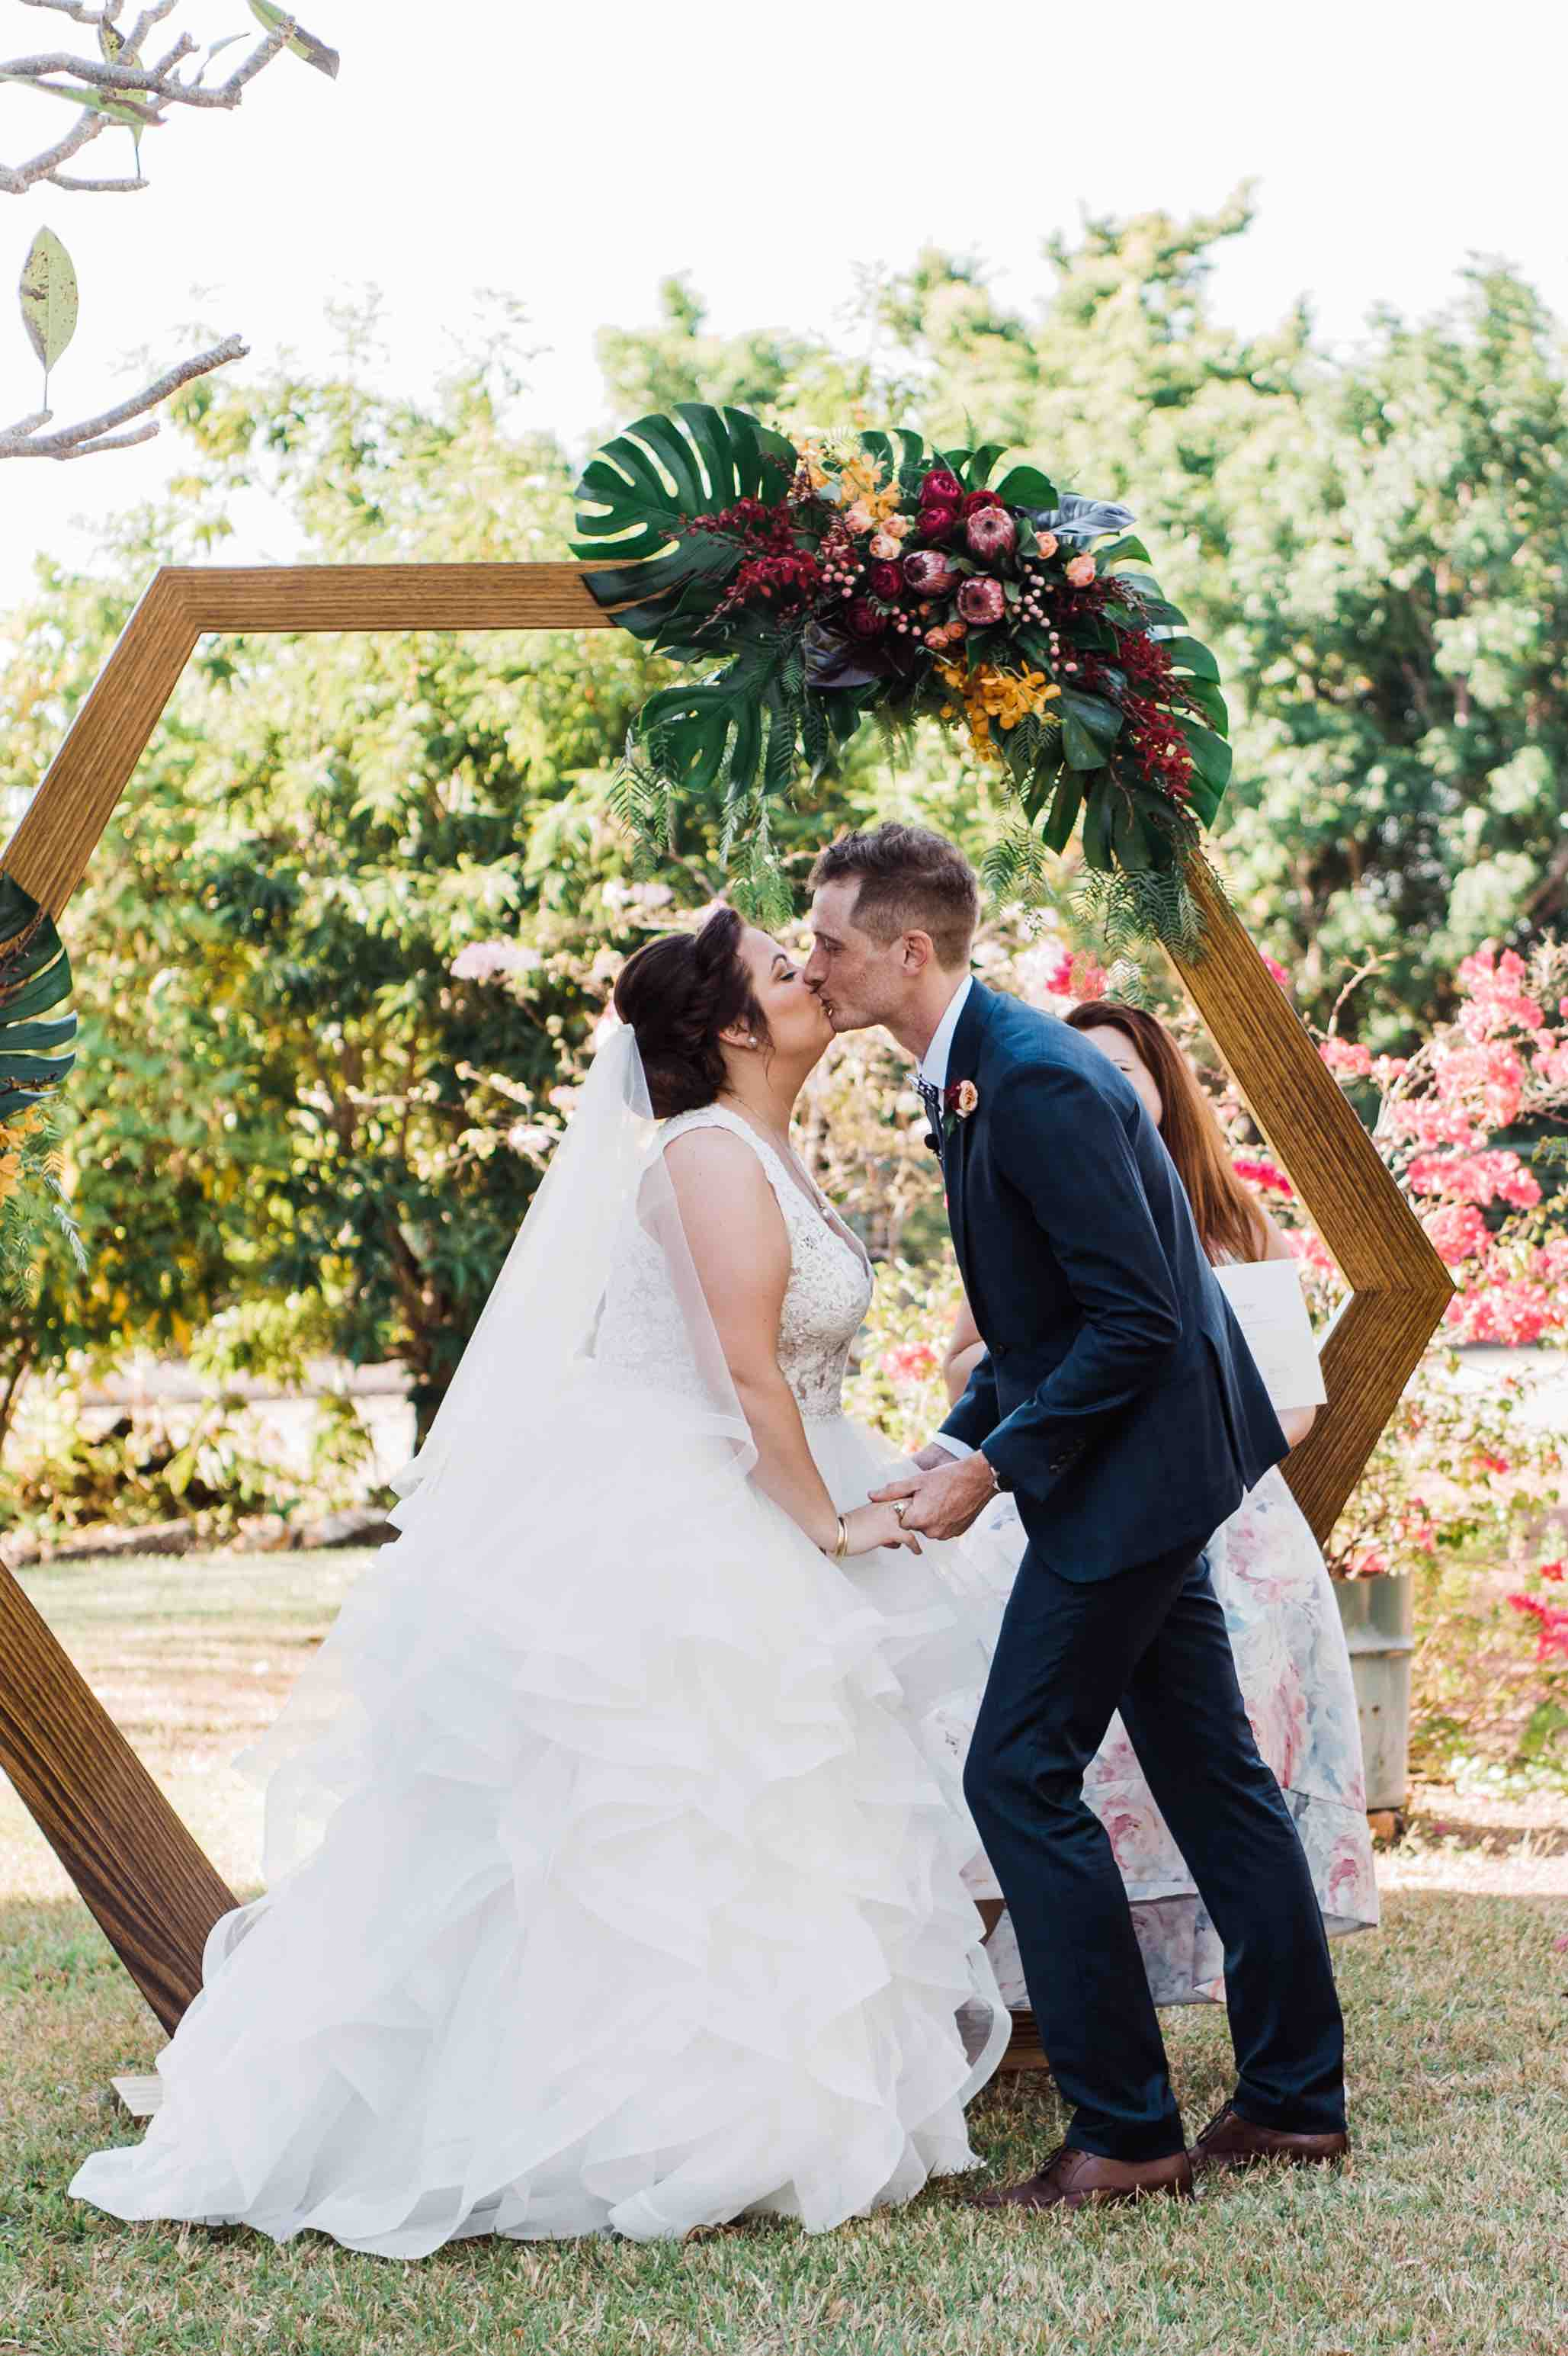 Wedding ceremony hexagon backdrop with floral